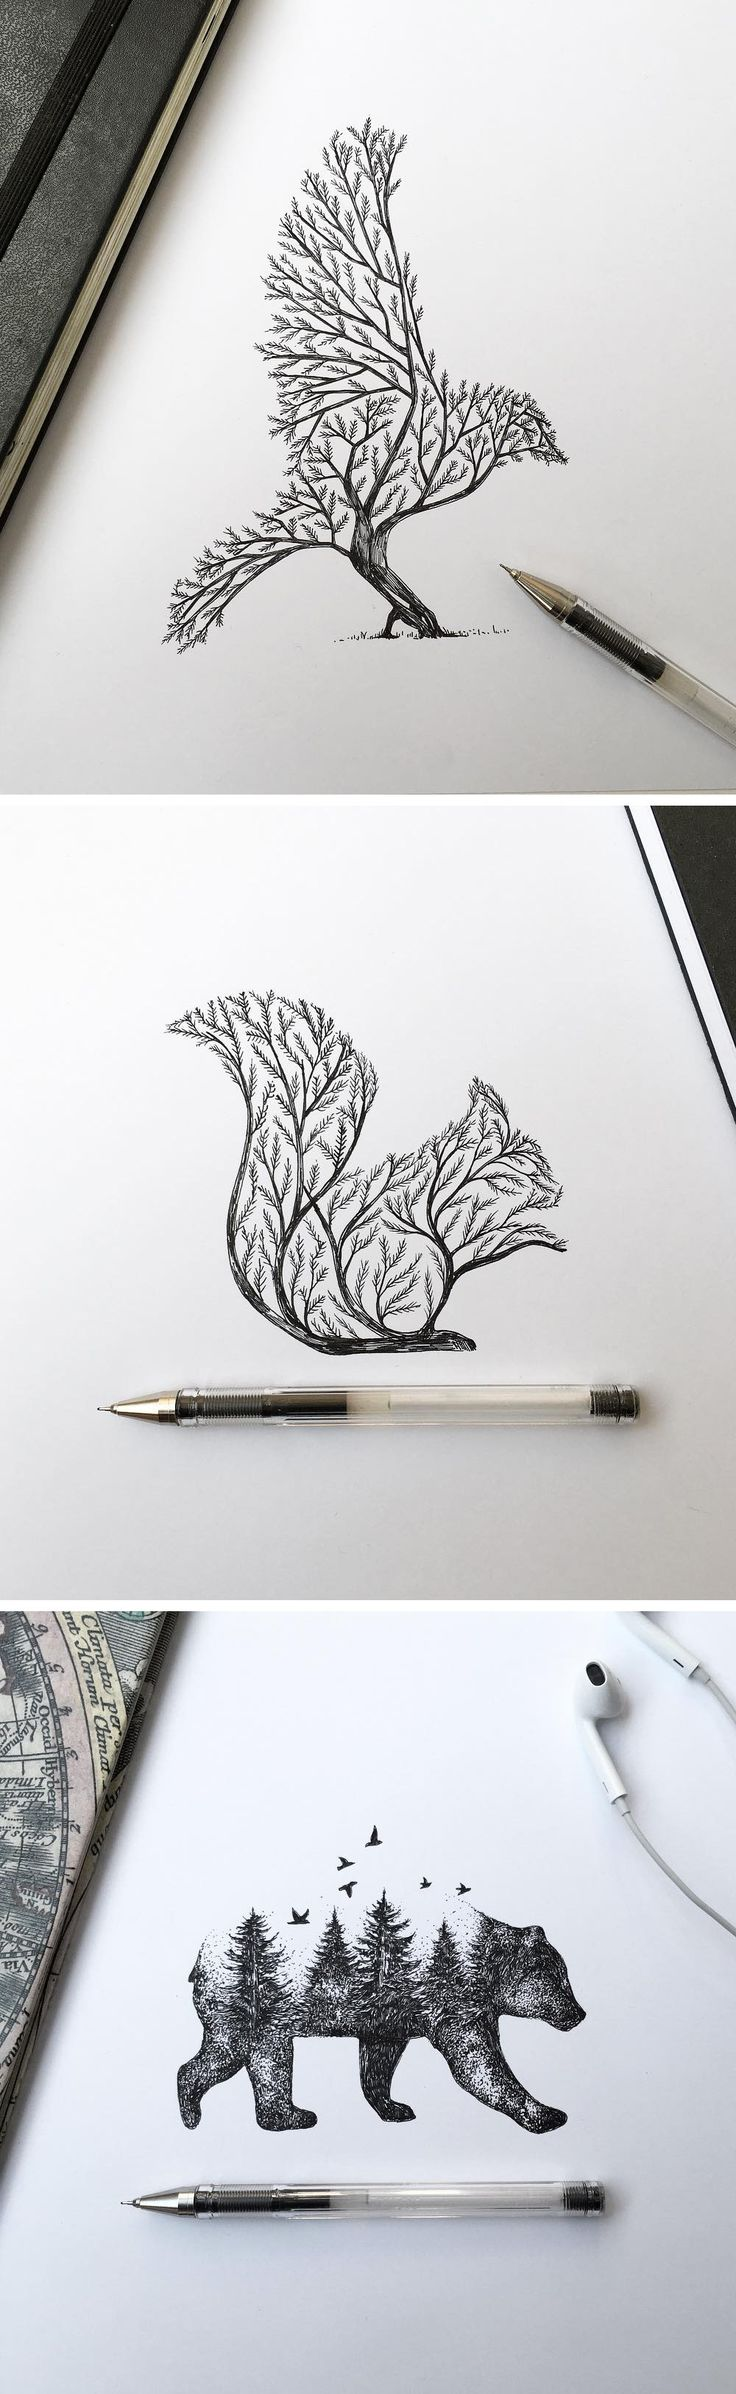 @◈ n i c o l e l e c h e r ◈ Pen & Ink Depictions of Trees Sprouting into Animals by Alfred Basha